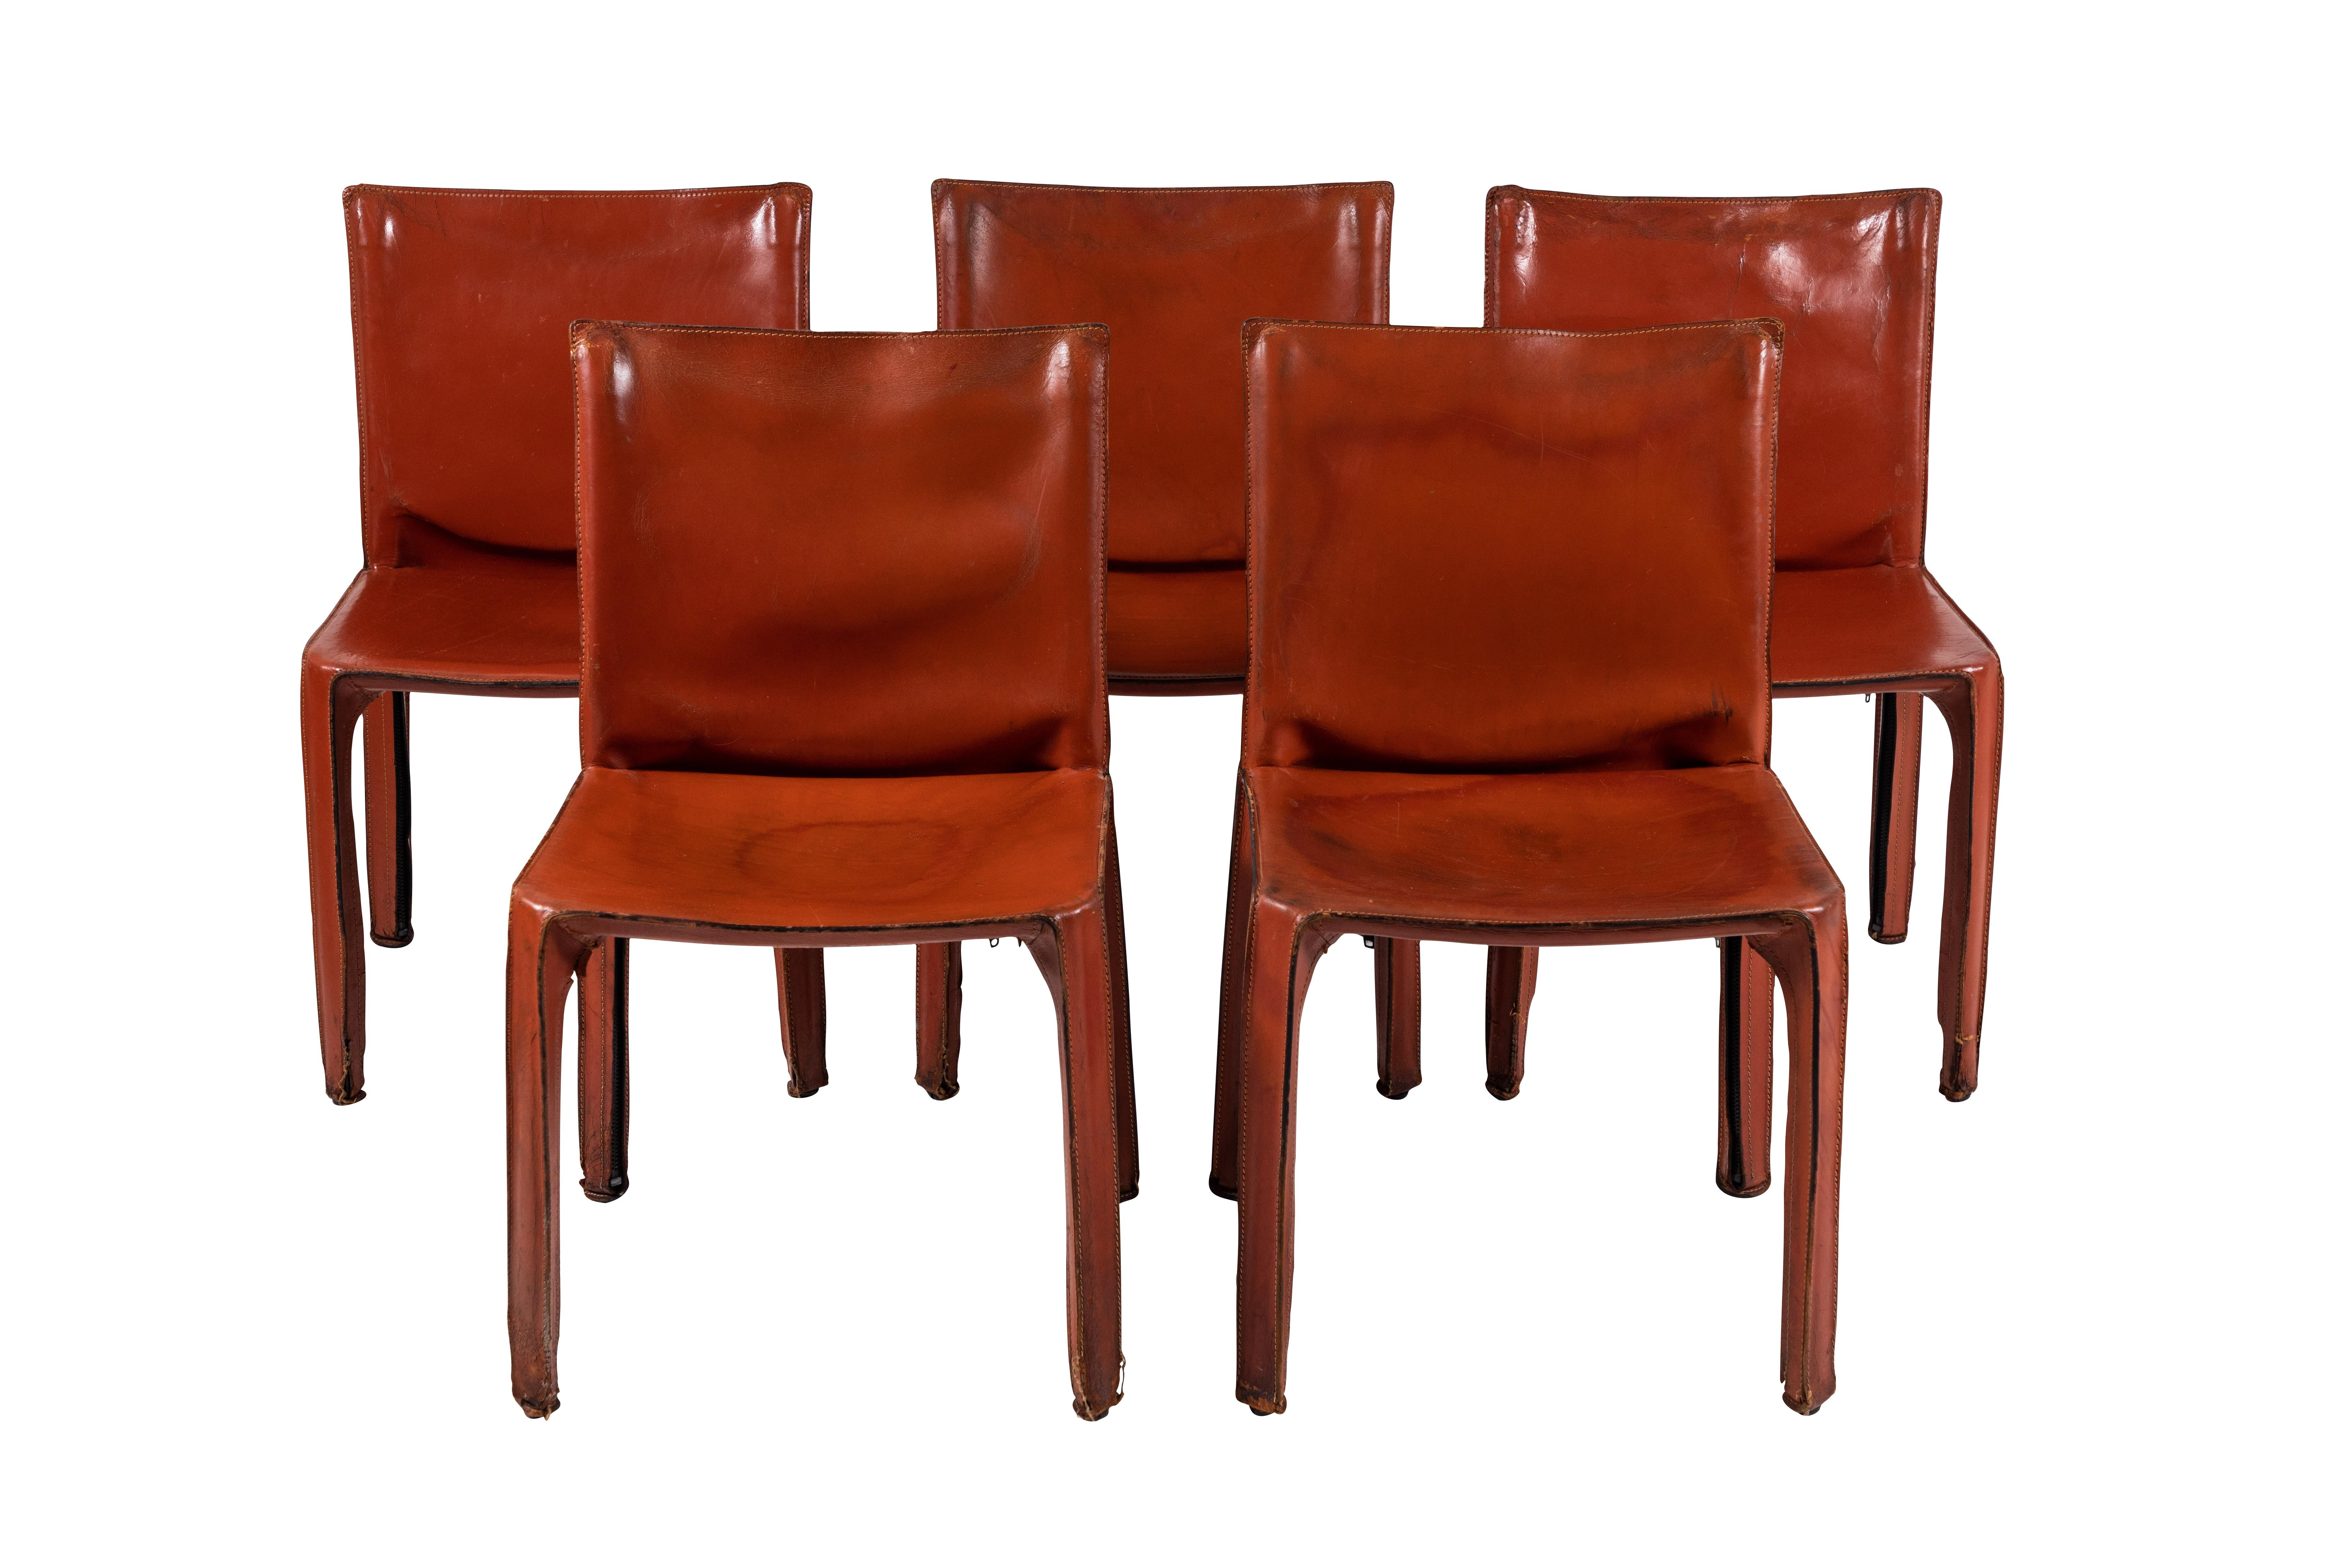 Outstanding Set Of Five Leather Mario Bellini Cab Chairs Produced By Ocoug Best Dining Table And Chair Ideas Images Ocougorg